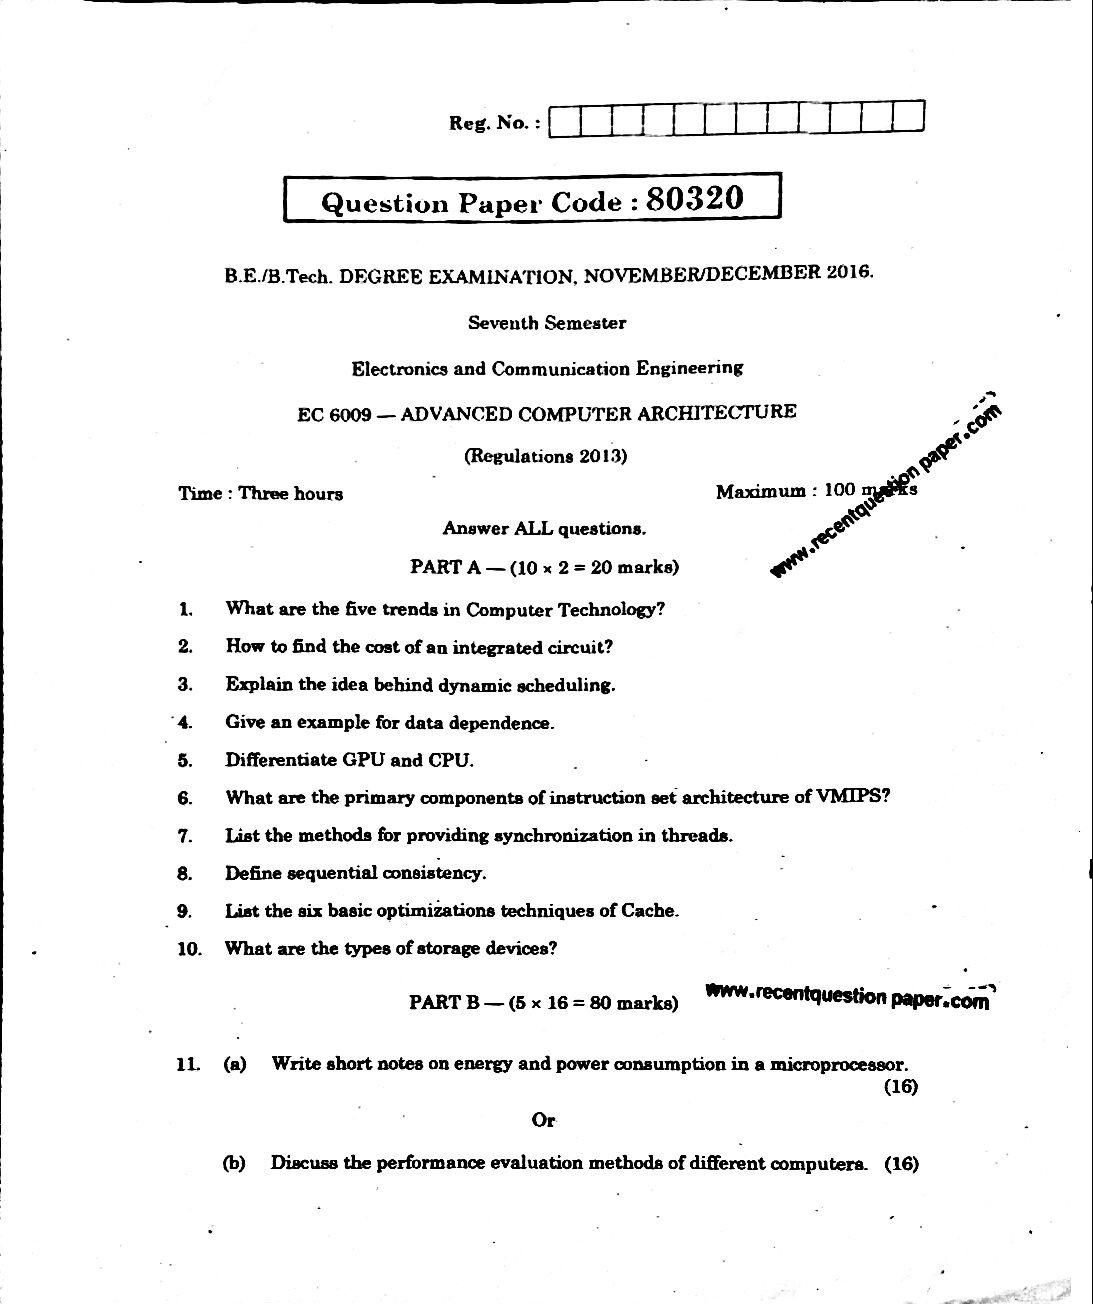 EC6009 Advanced Computer Architecture Anna University Question paper Nov/Dec 2016